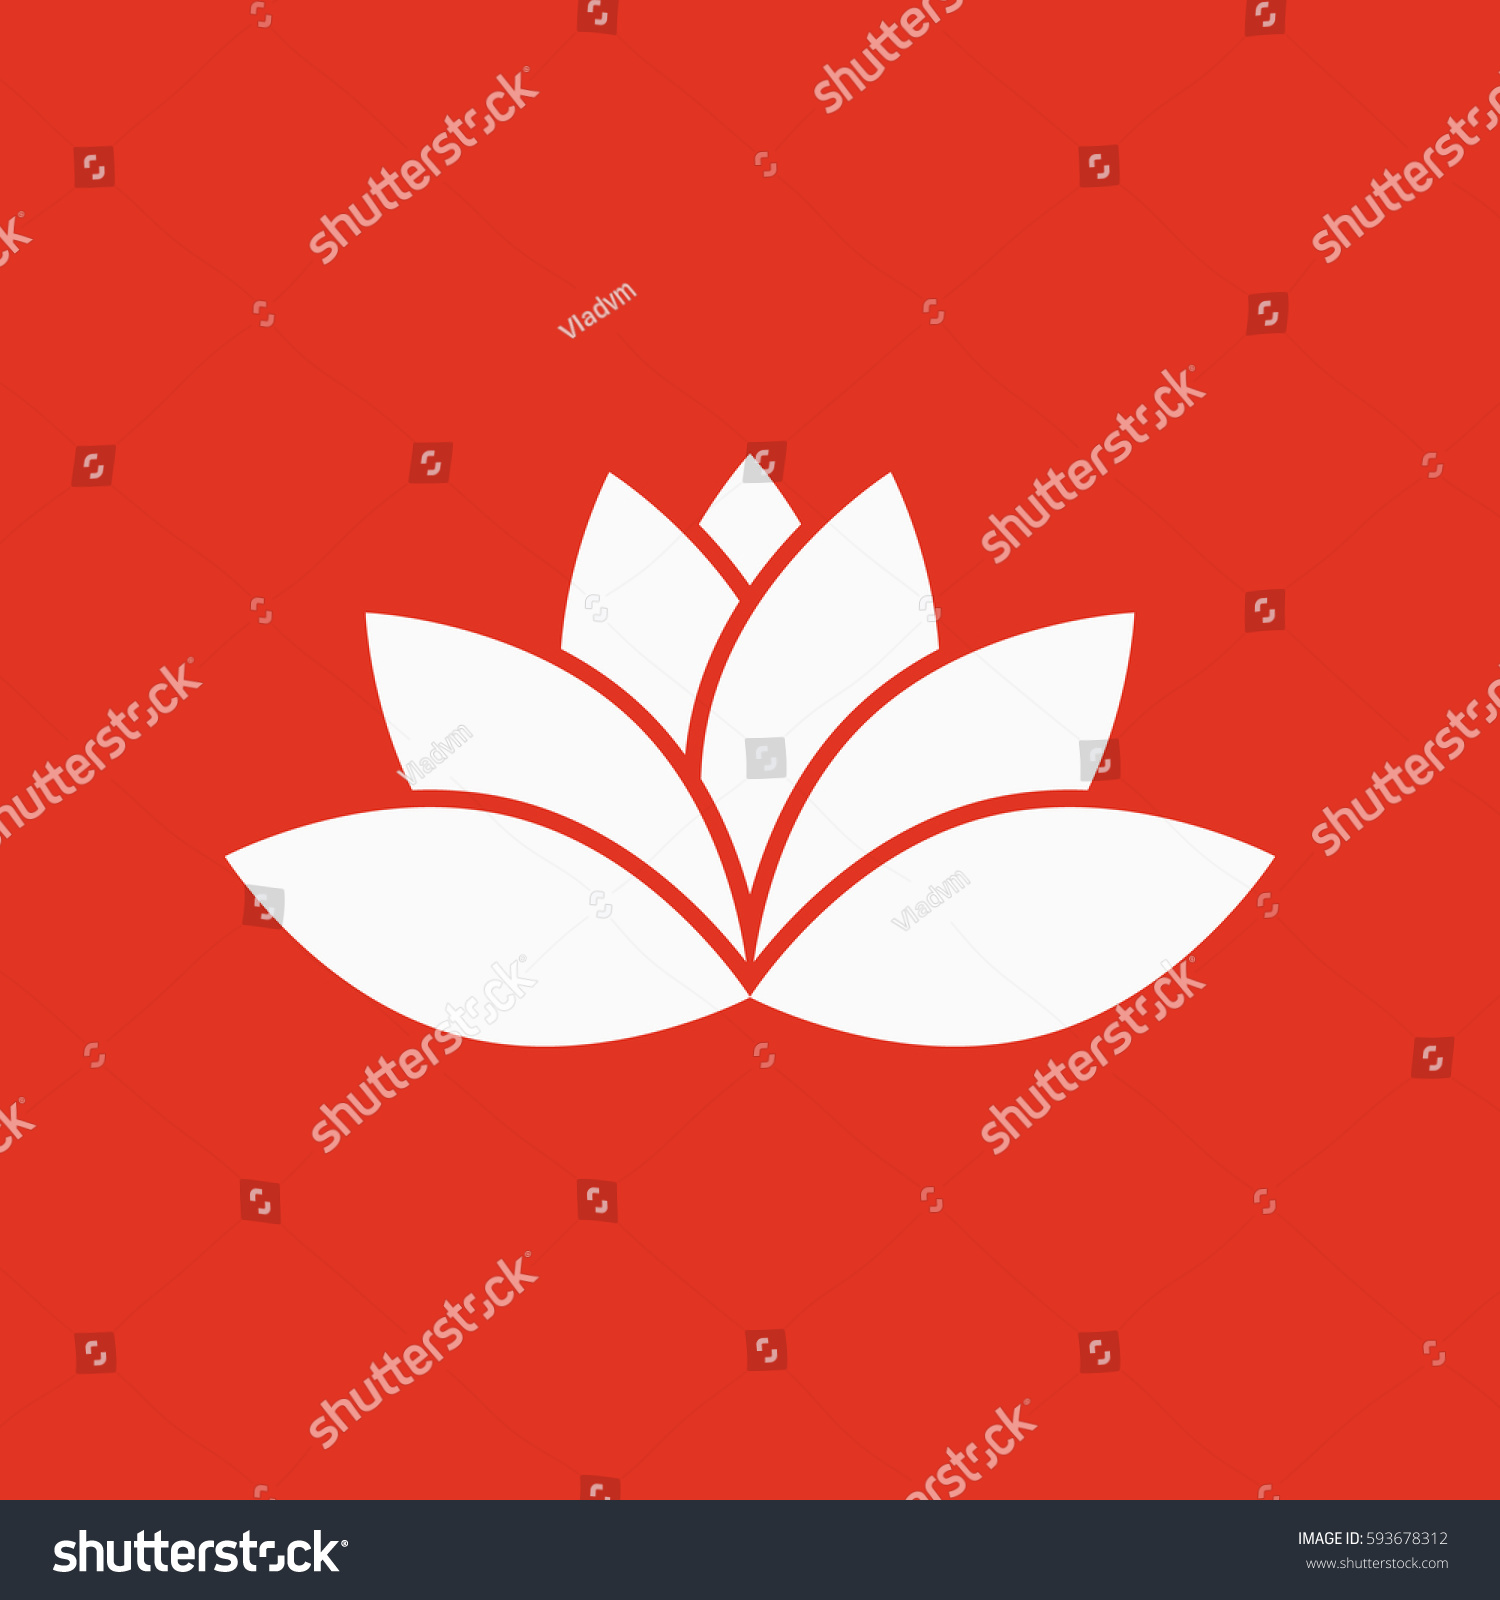 Lotus icon lily flower lifestyle symbol stock vector 593678312 lily and flower lifestyle symbol flat design stock vector izmirmasajfo Choice Image